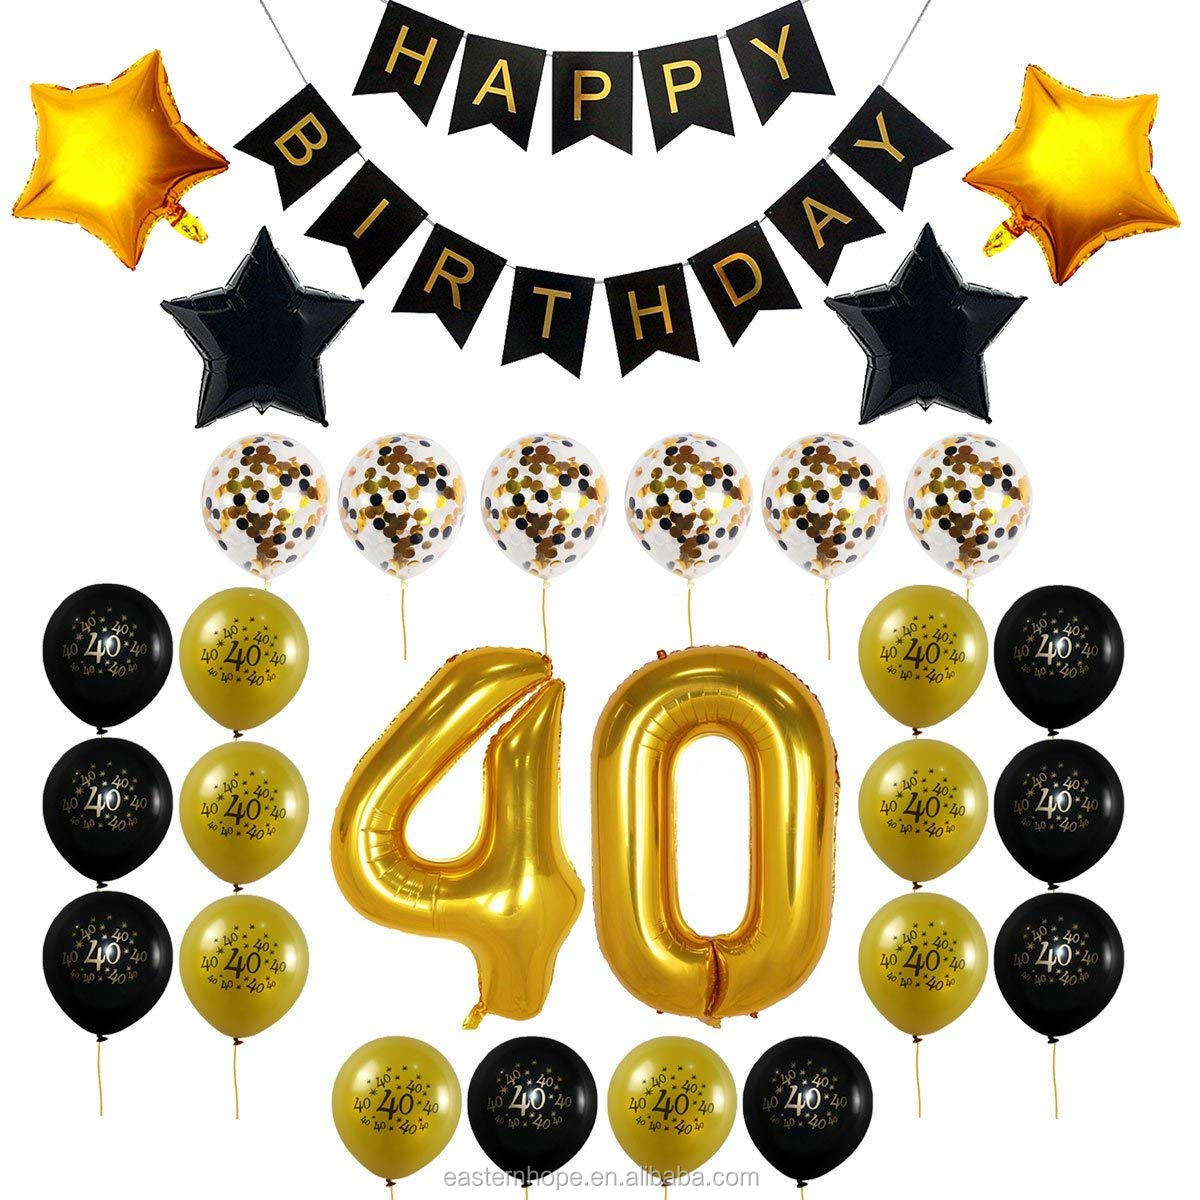 HAPPY 40TH BIRTHDAY BANNER BLACK AND GOLD PARTY BUNTING